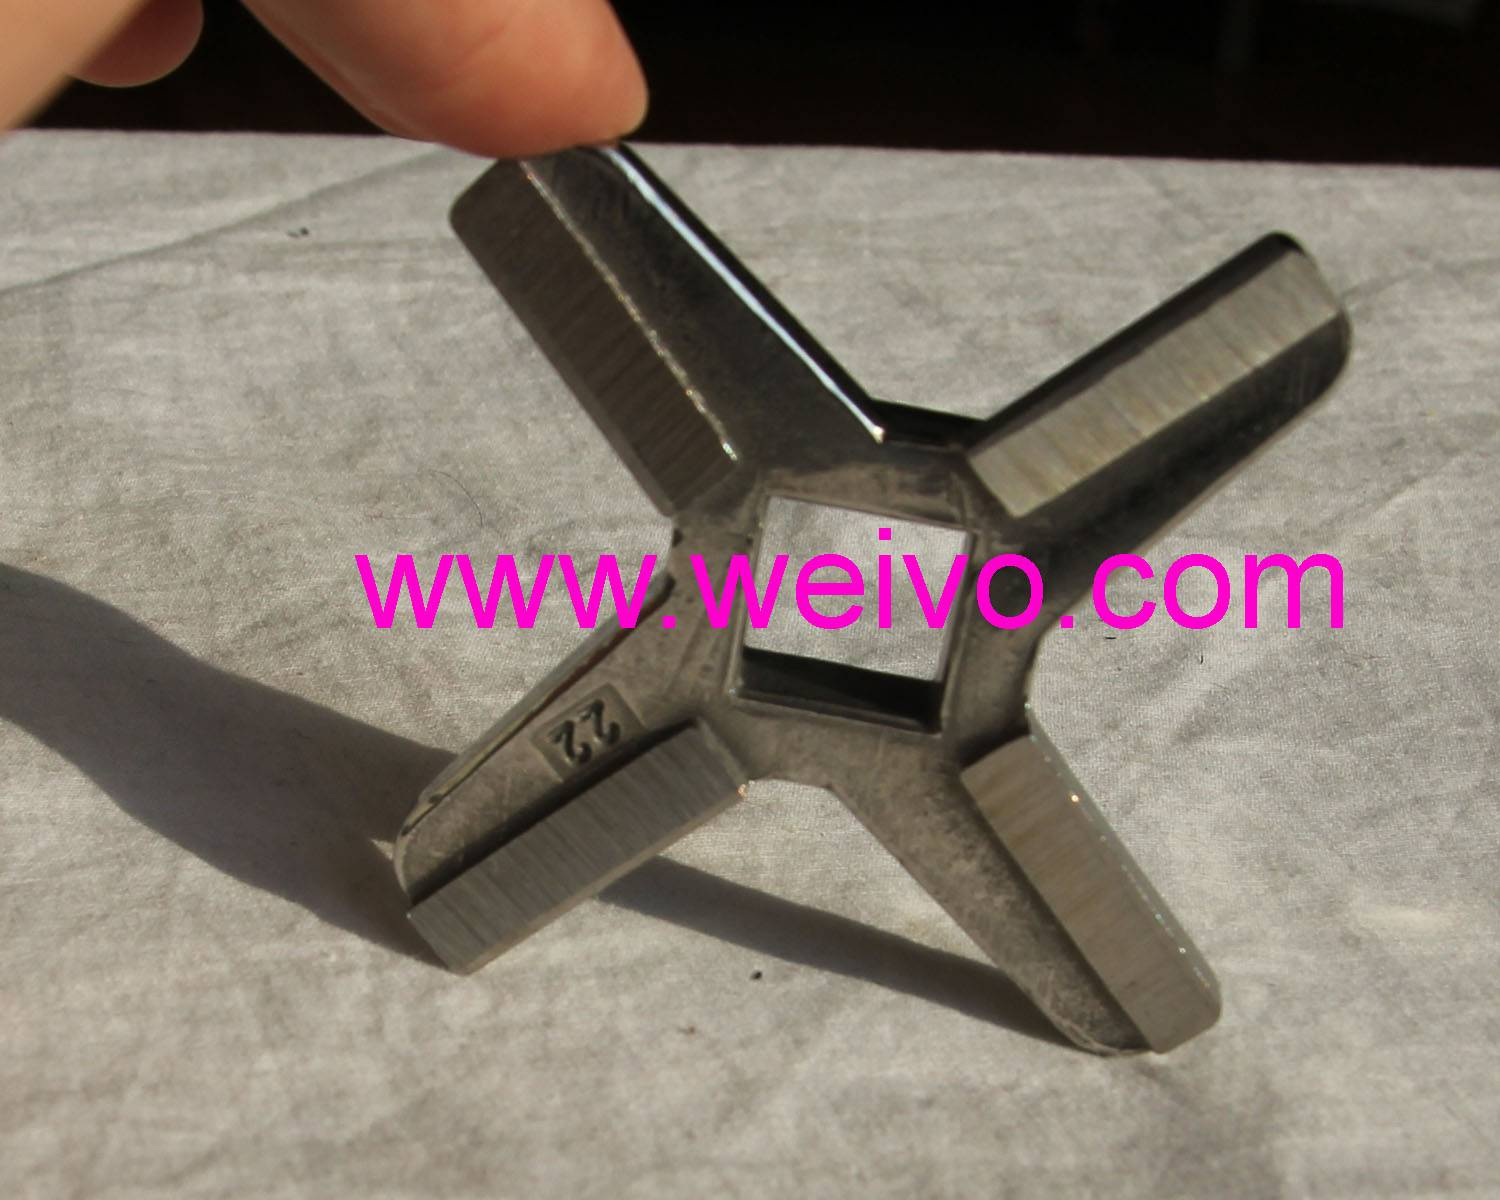 Stainless Steel 420 Knives for Meat Grinder/ Meat Mincer/ Meat Chopper